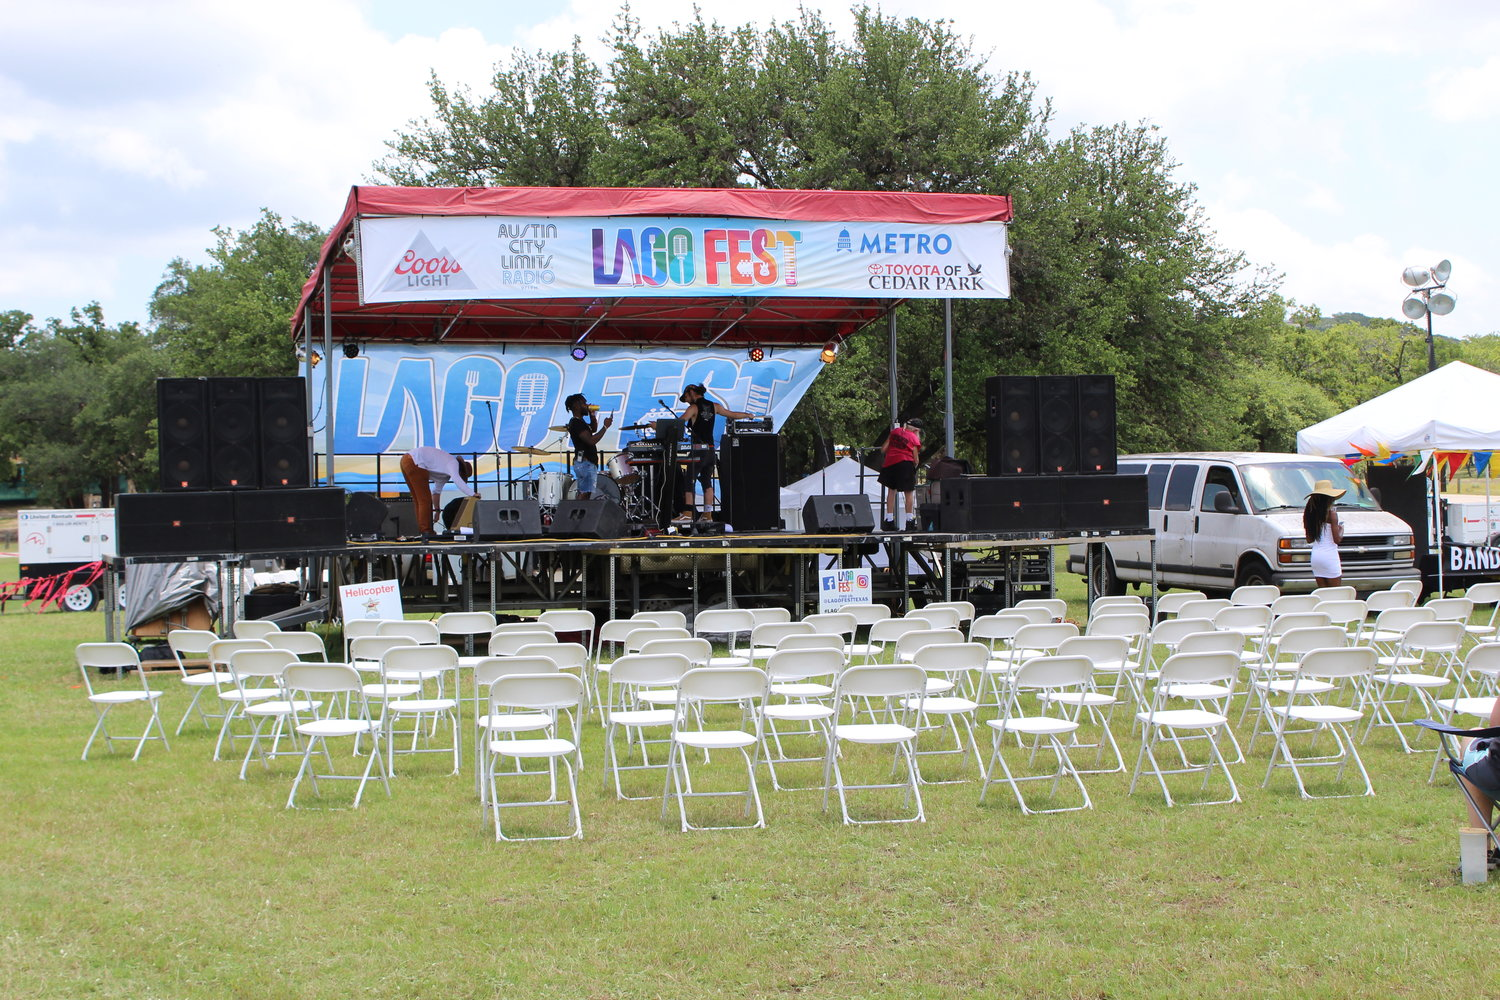 The music stage at LagoFest toward the beginning of the festival on June 16, 2019.